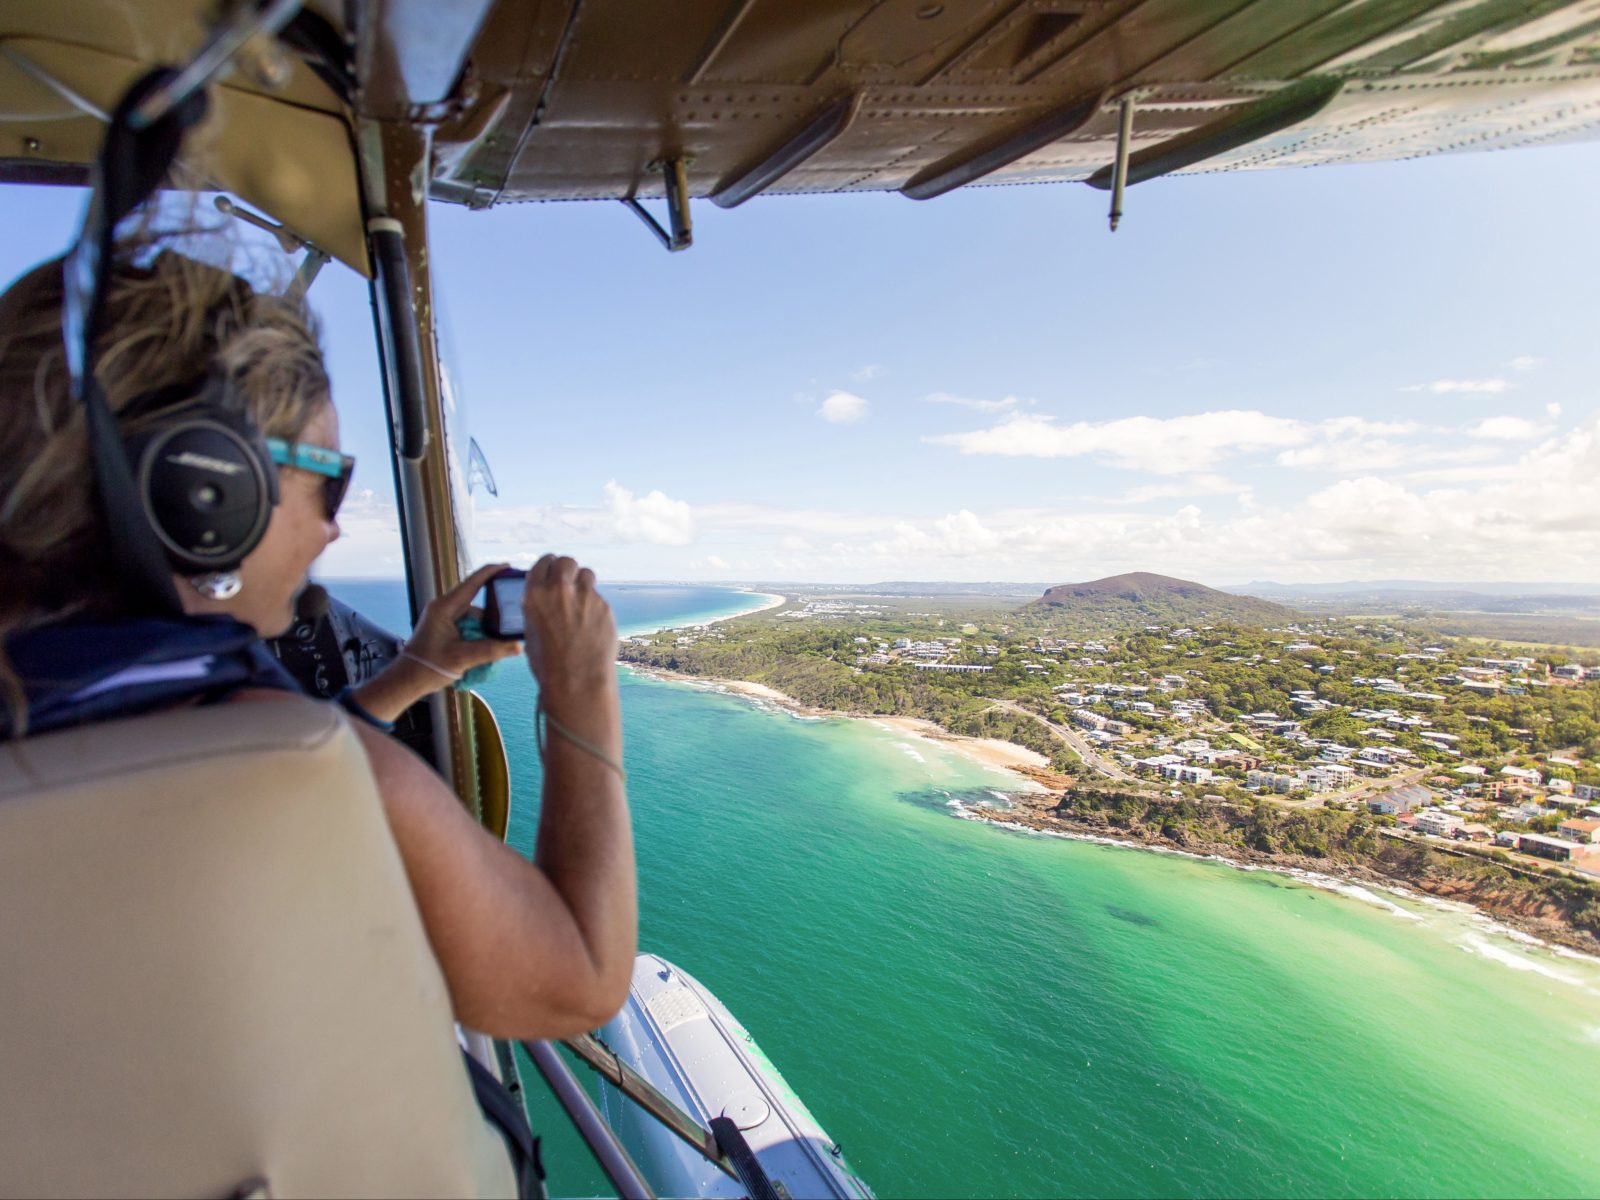 Seaplane passenger takes photos over Mt Coolum with doors off